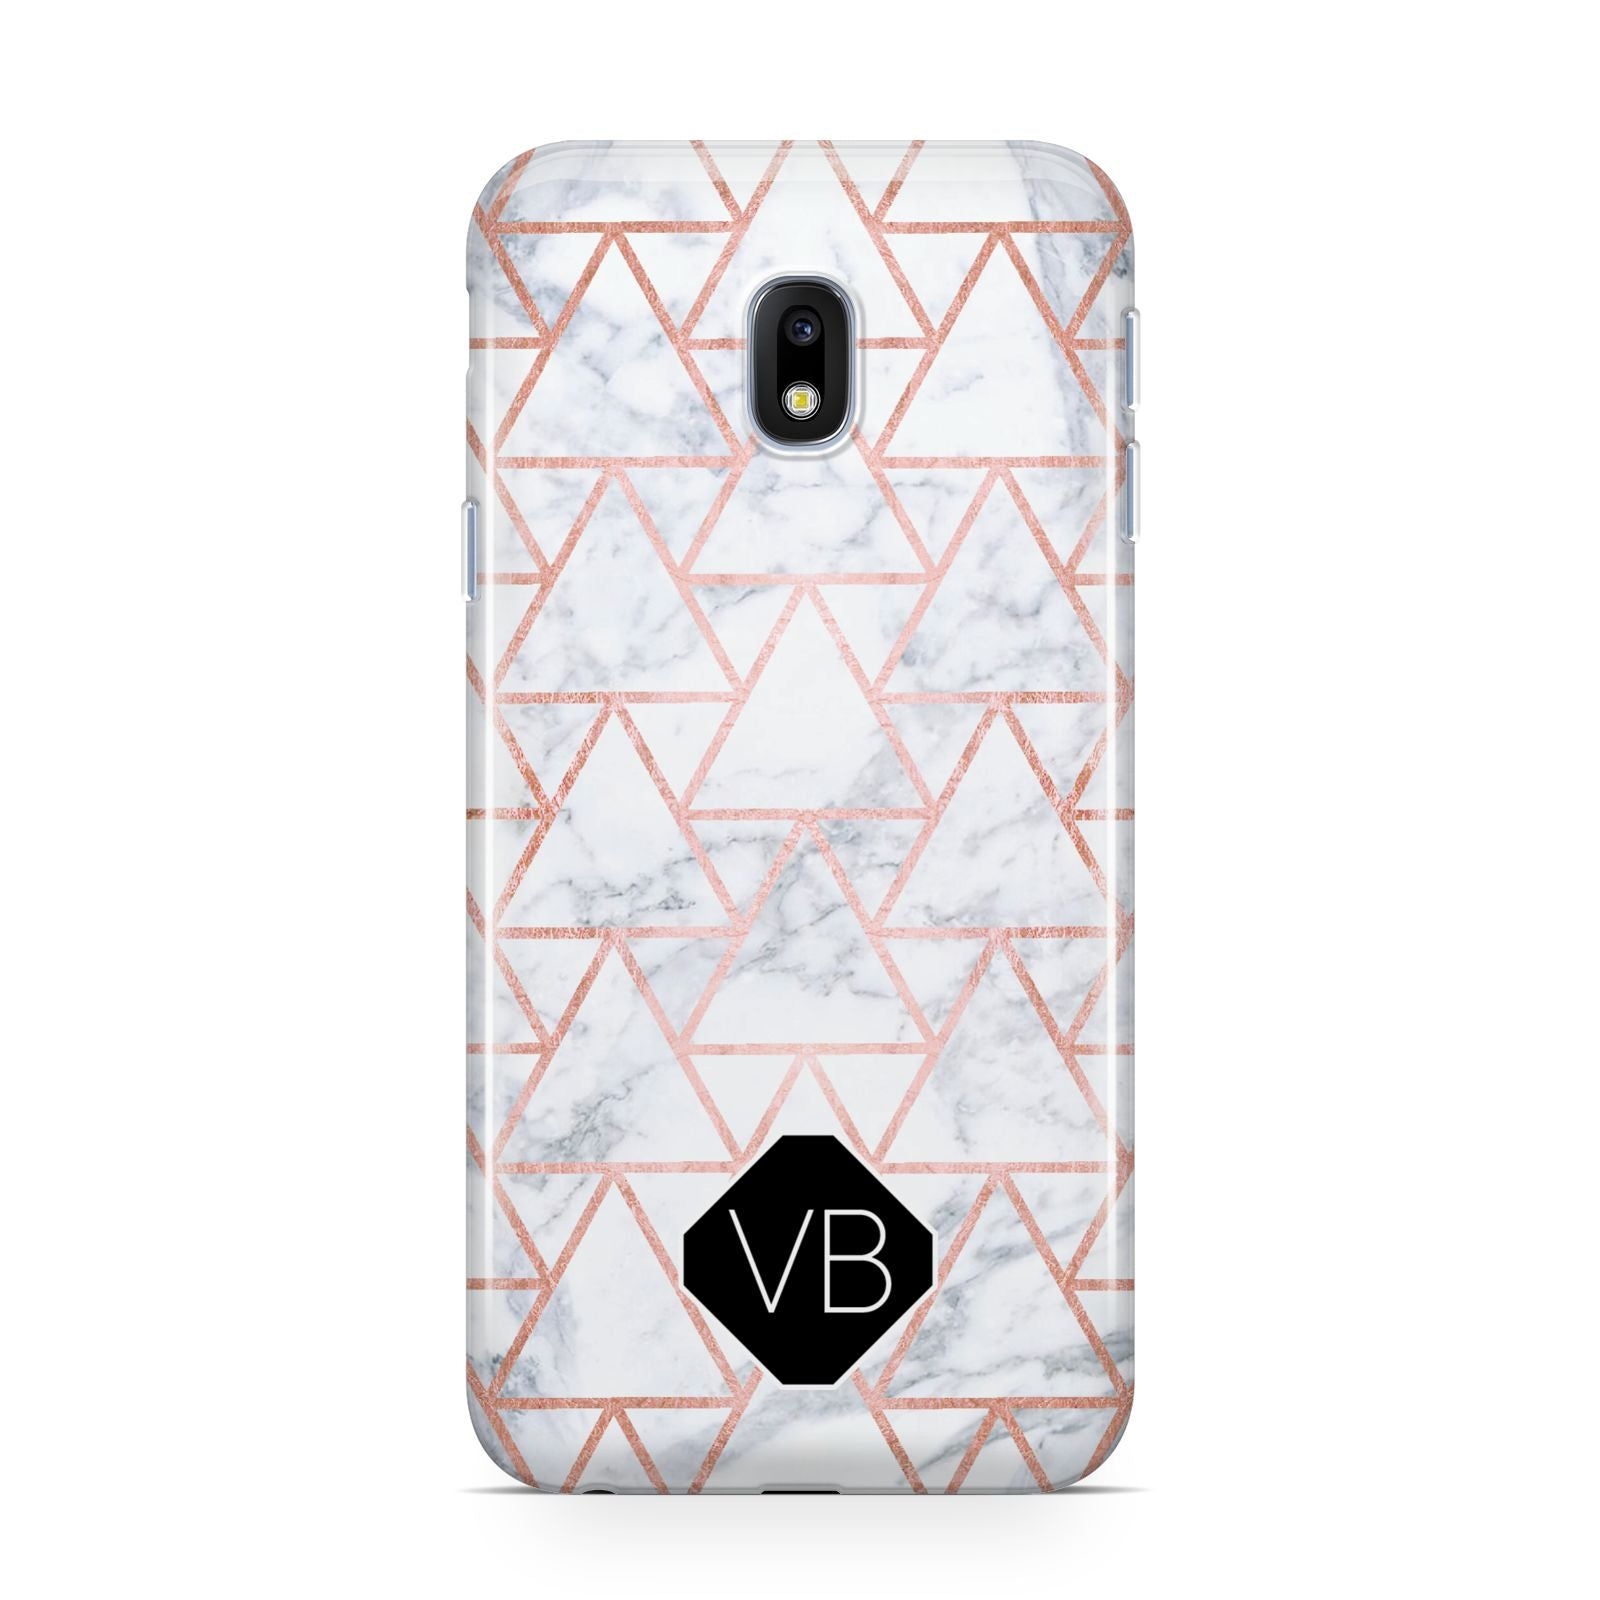 Personalised Rose Gold Grey Marble Hexagon Samsung Galaxy J3 2017 Case